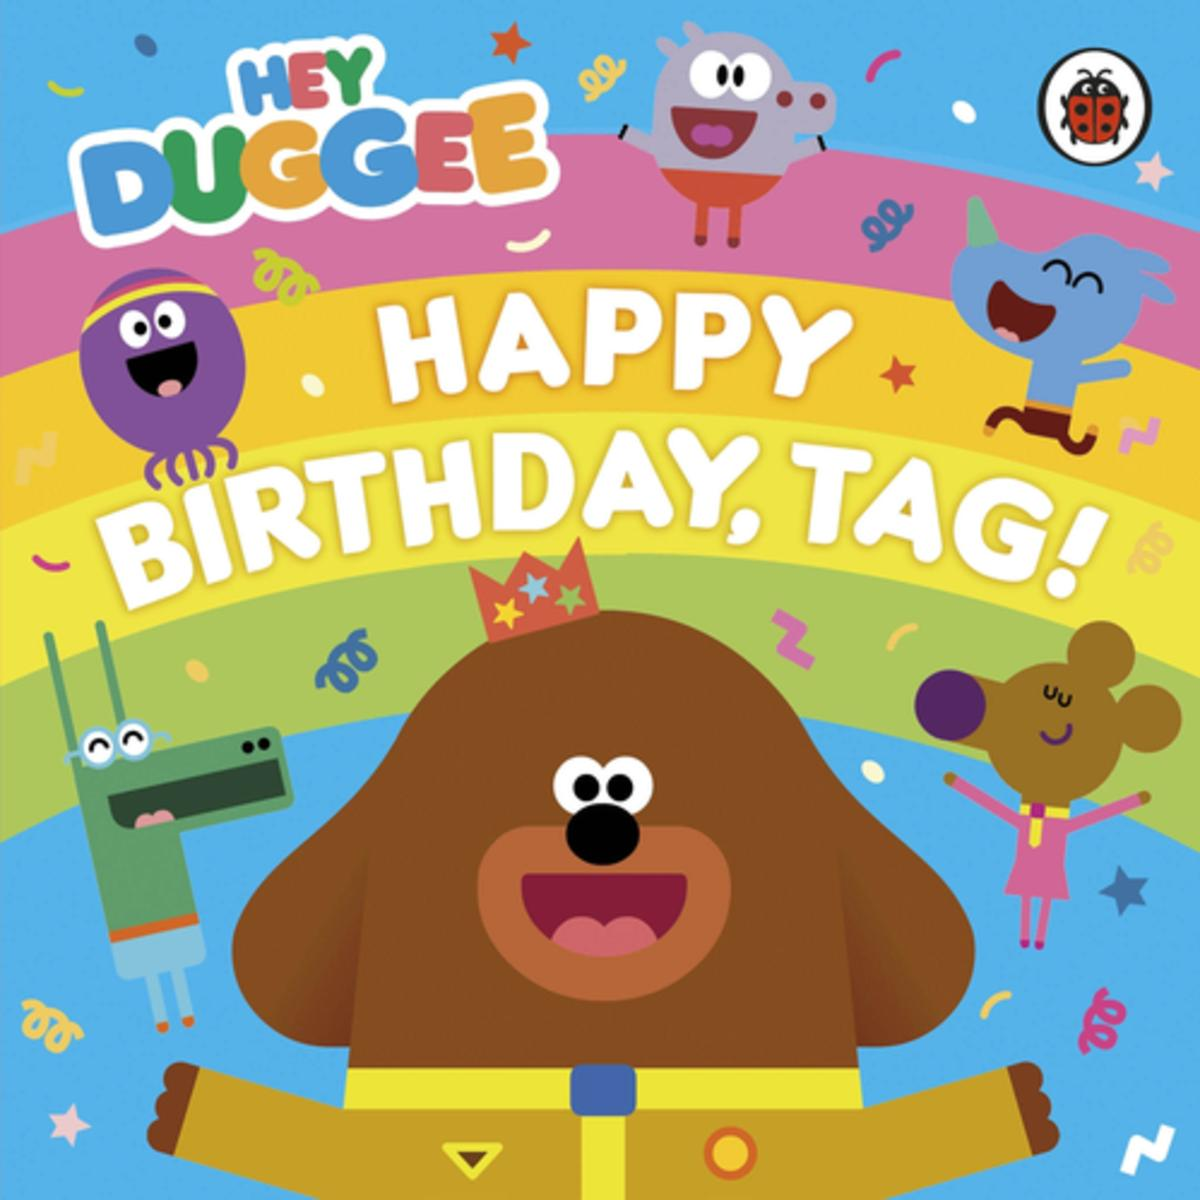 happy birthday tag ; hey-duggee-happy-birthday-tag